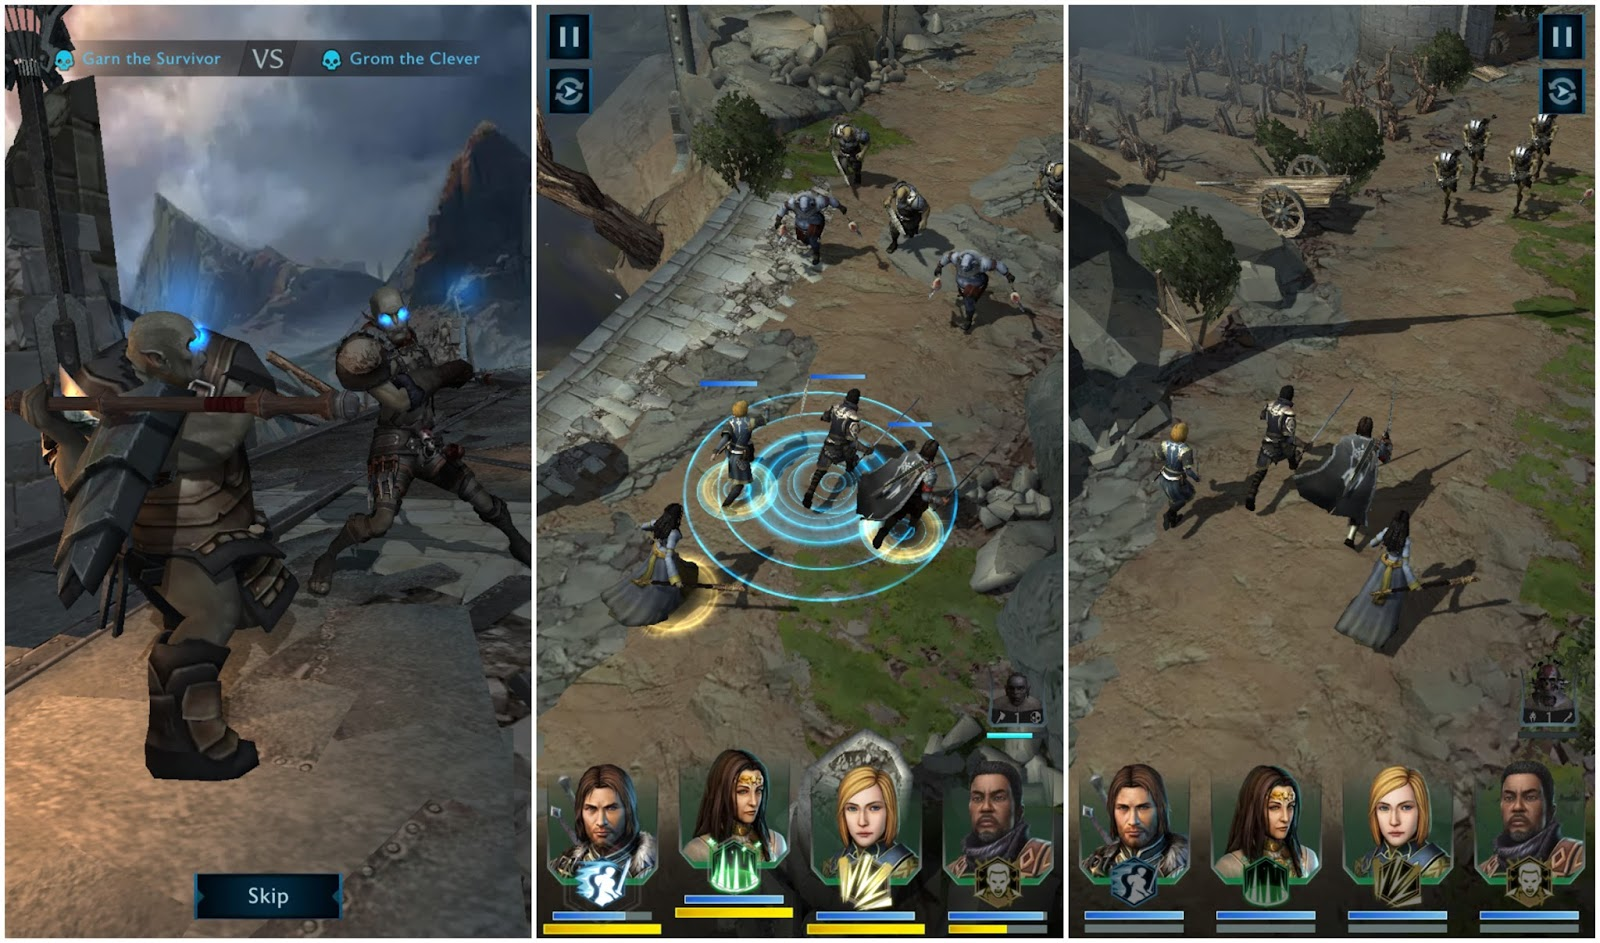 shadow of war mobile game